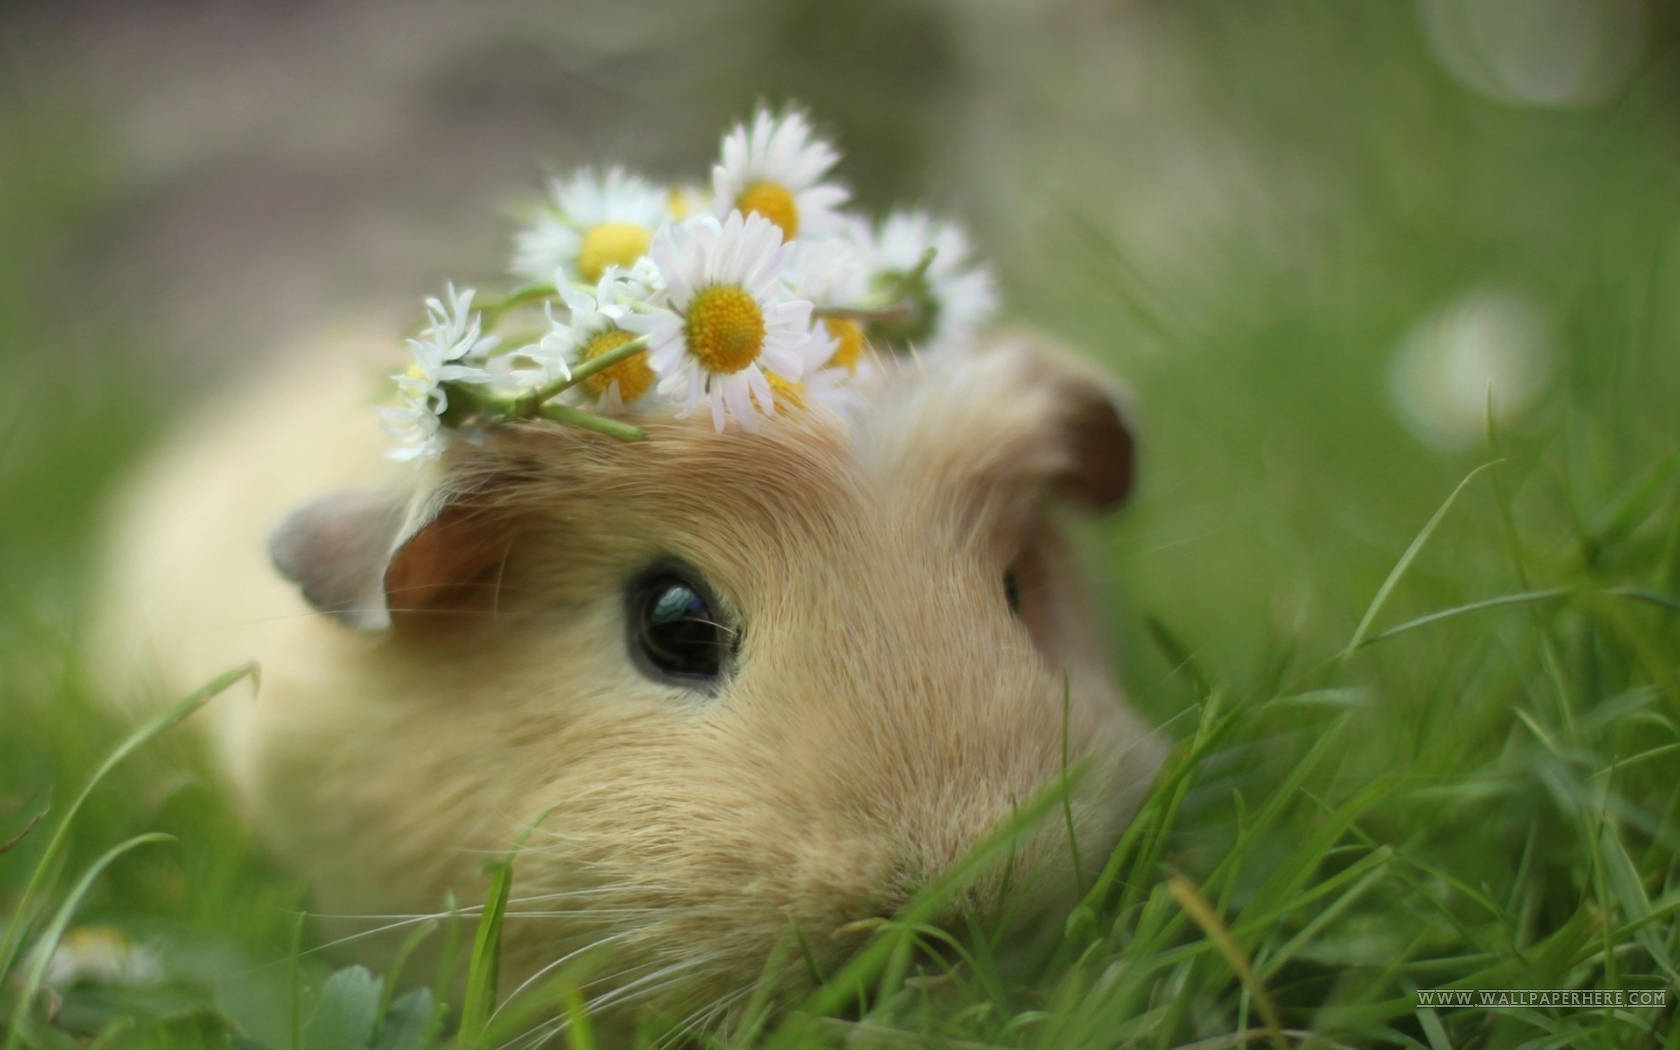 Cute Animal   Cavy Wallpaper More PC Wallpaper for Your Desktop 1680x1050